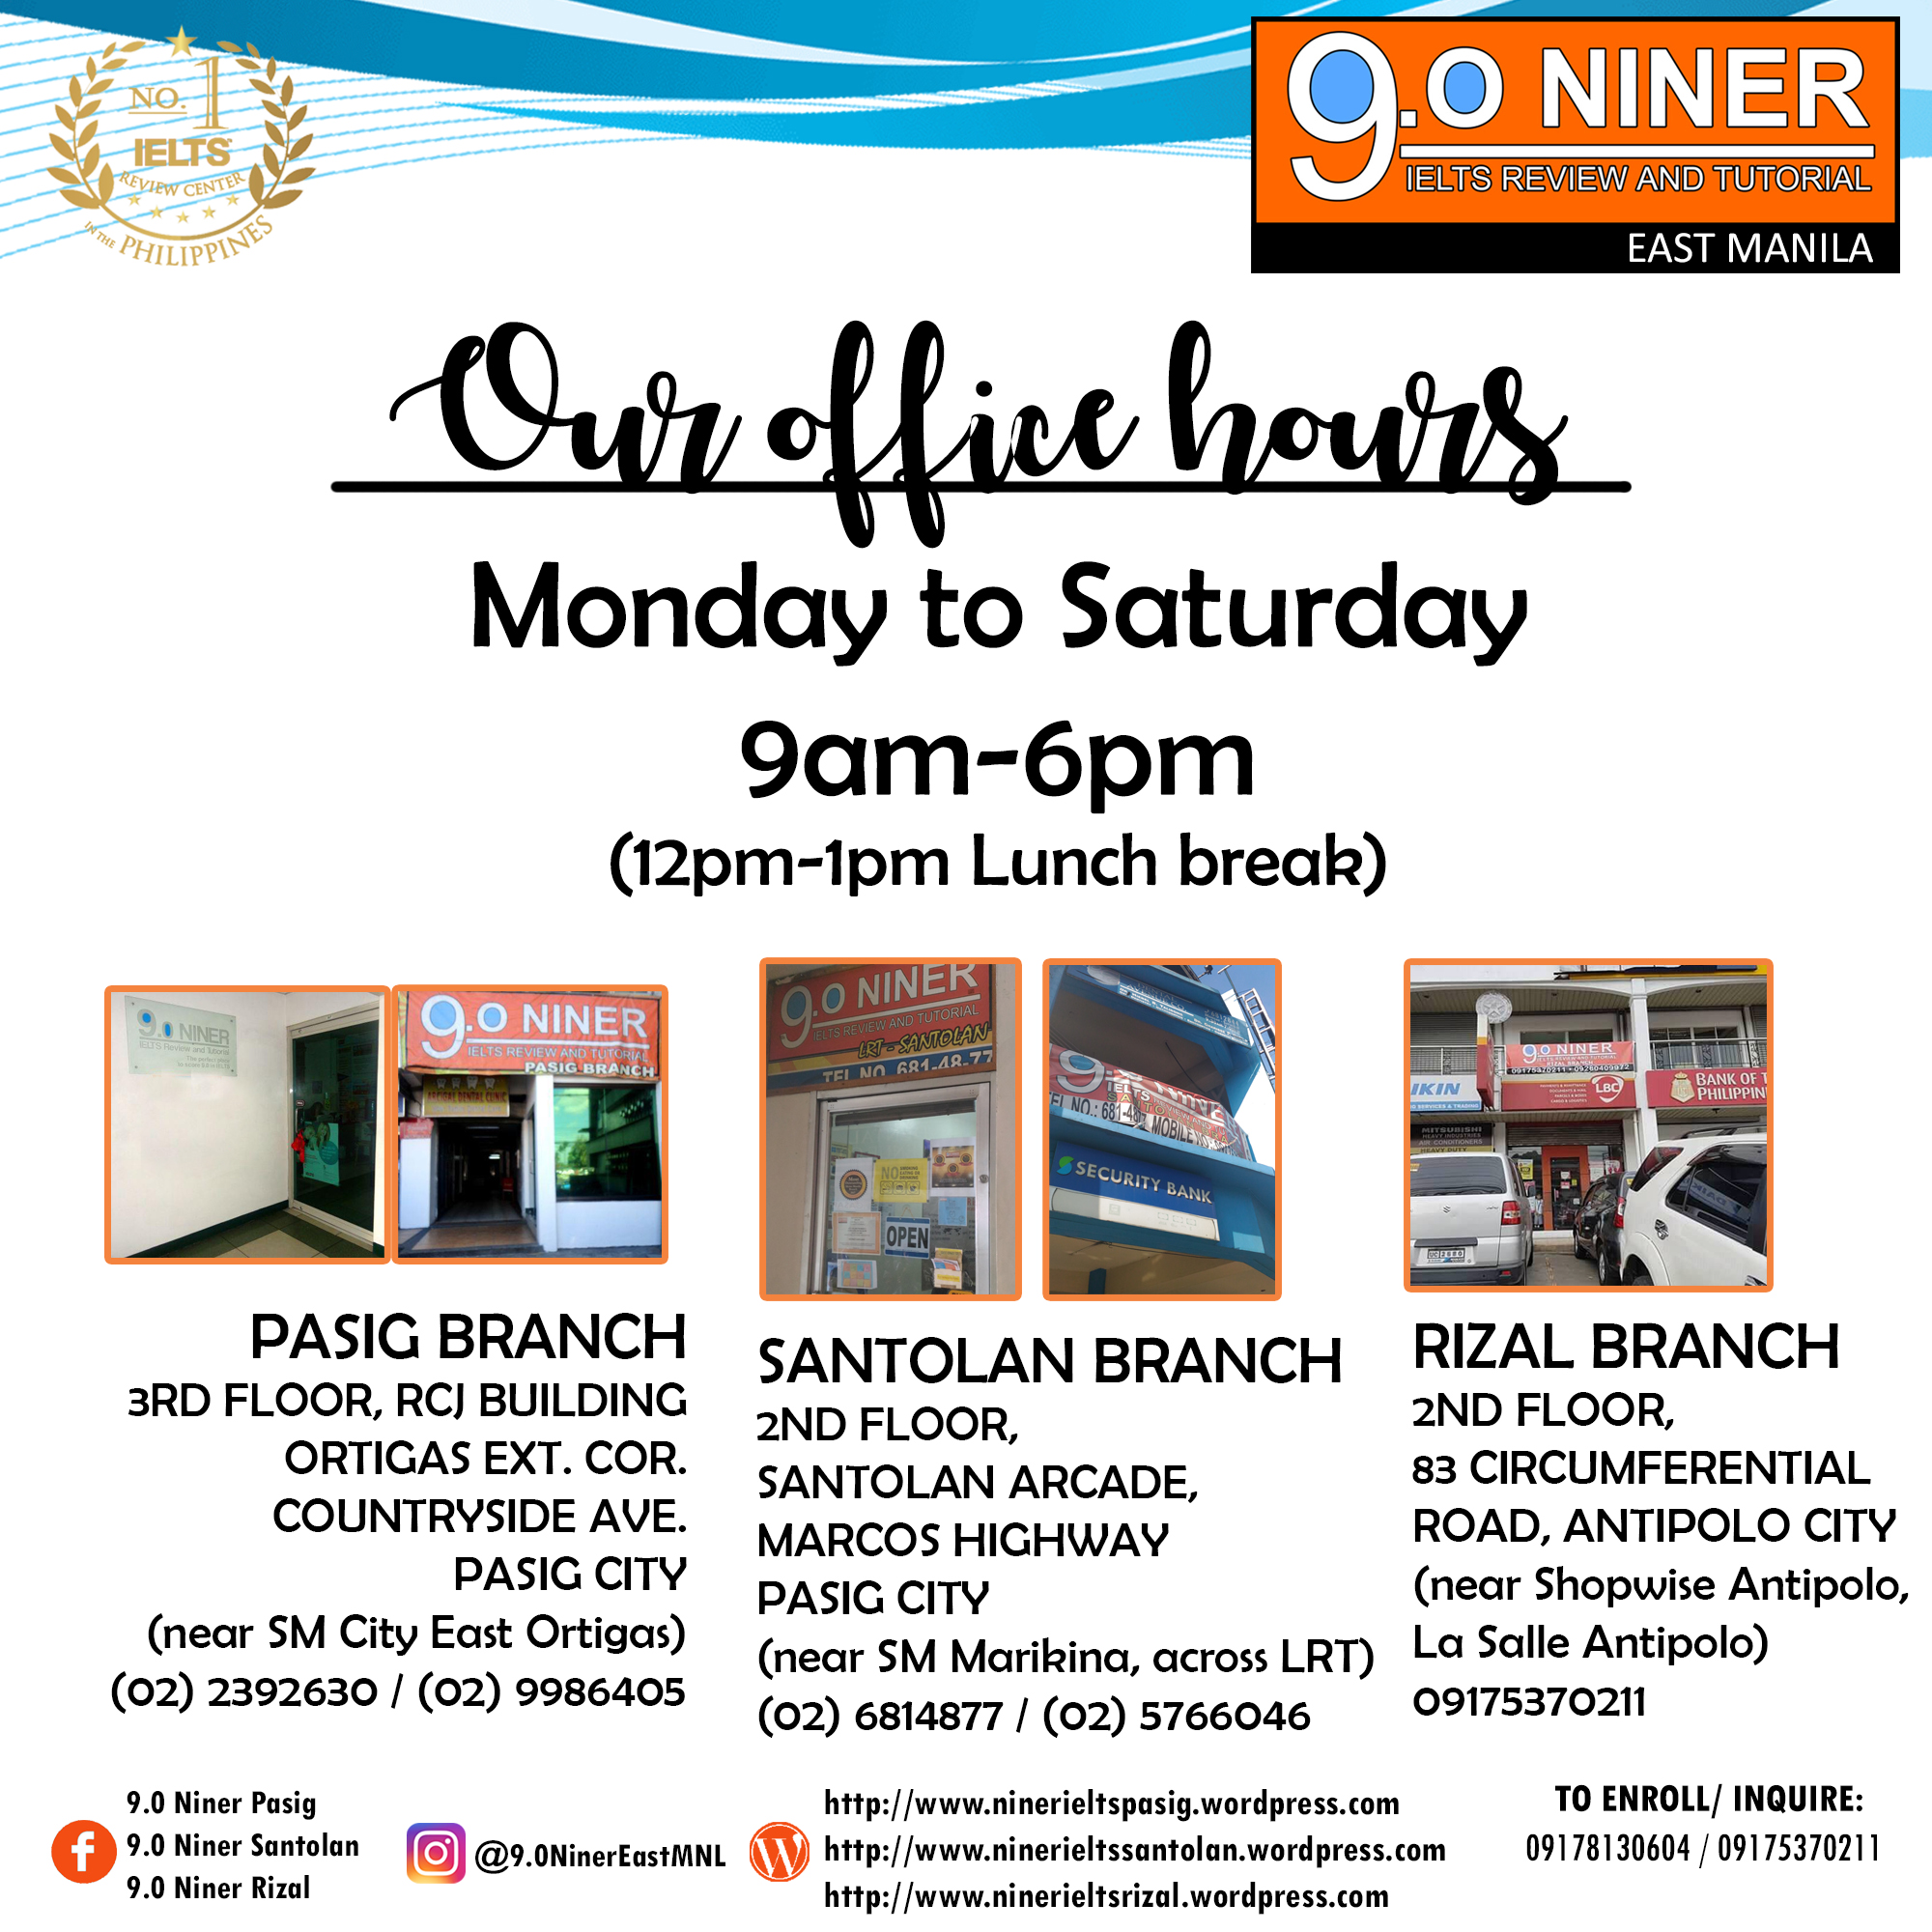 Branches – 9.0 Niner IELTS Review East Manila